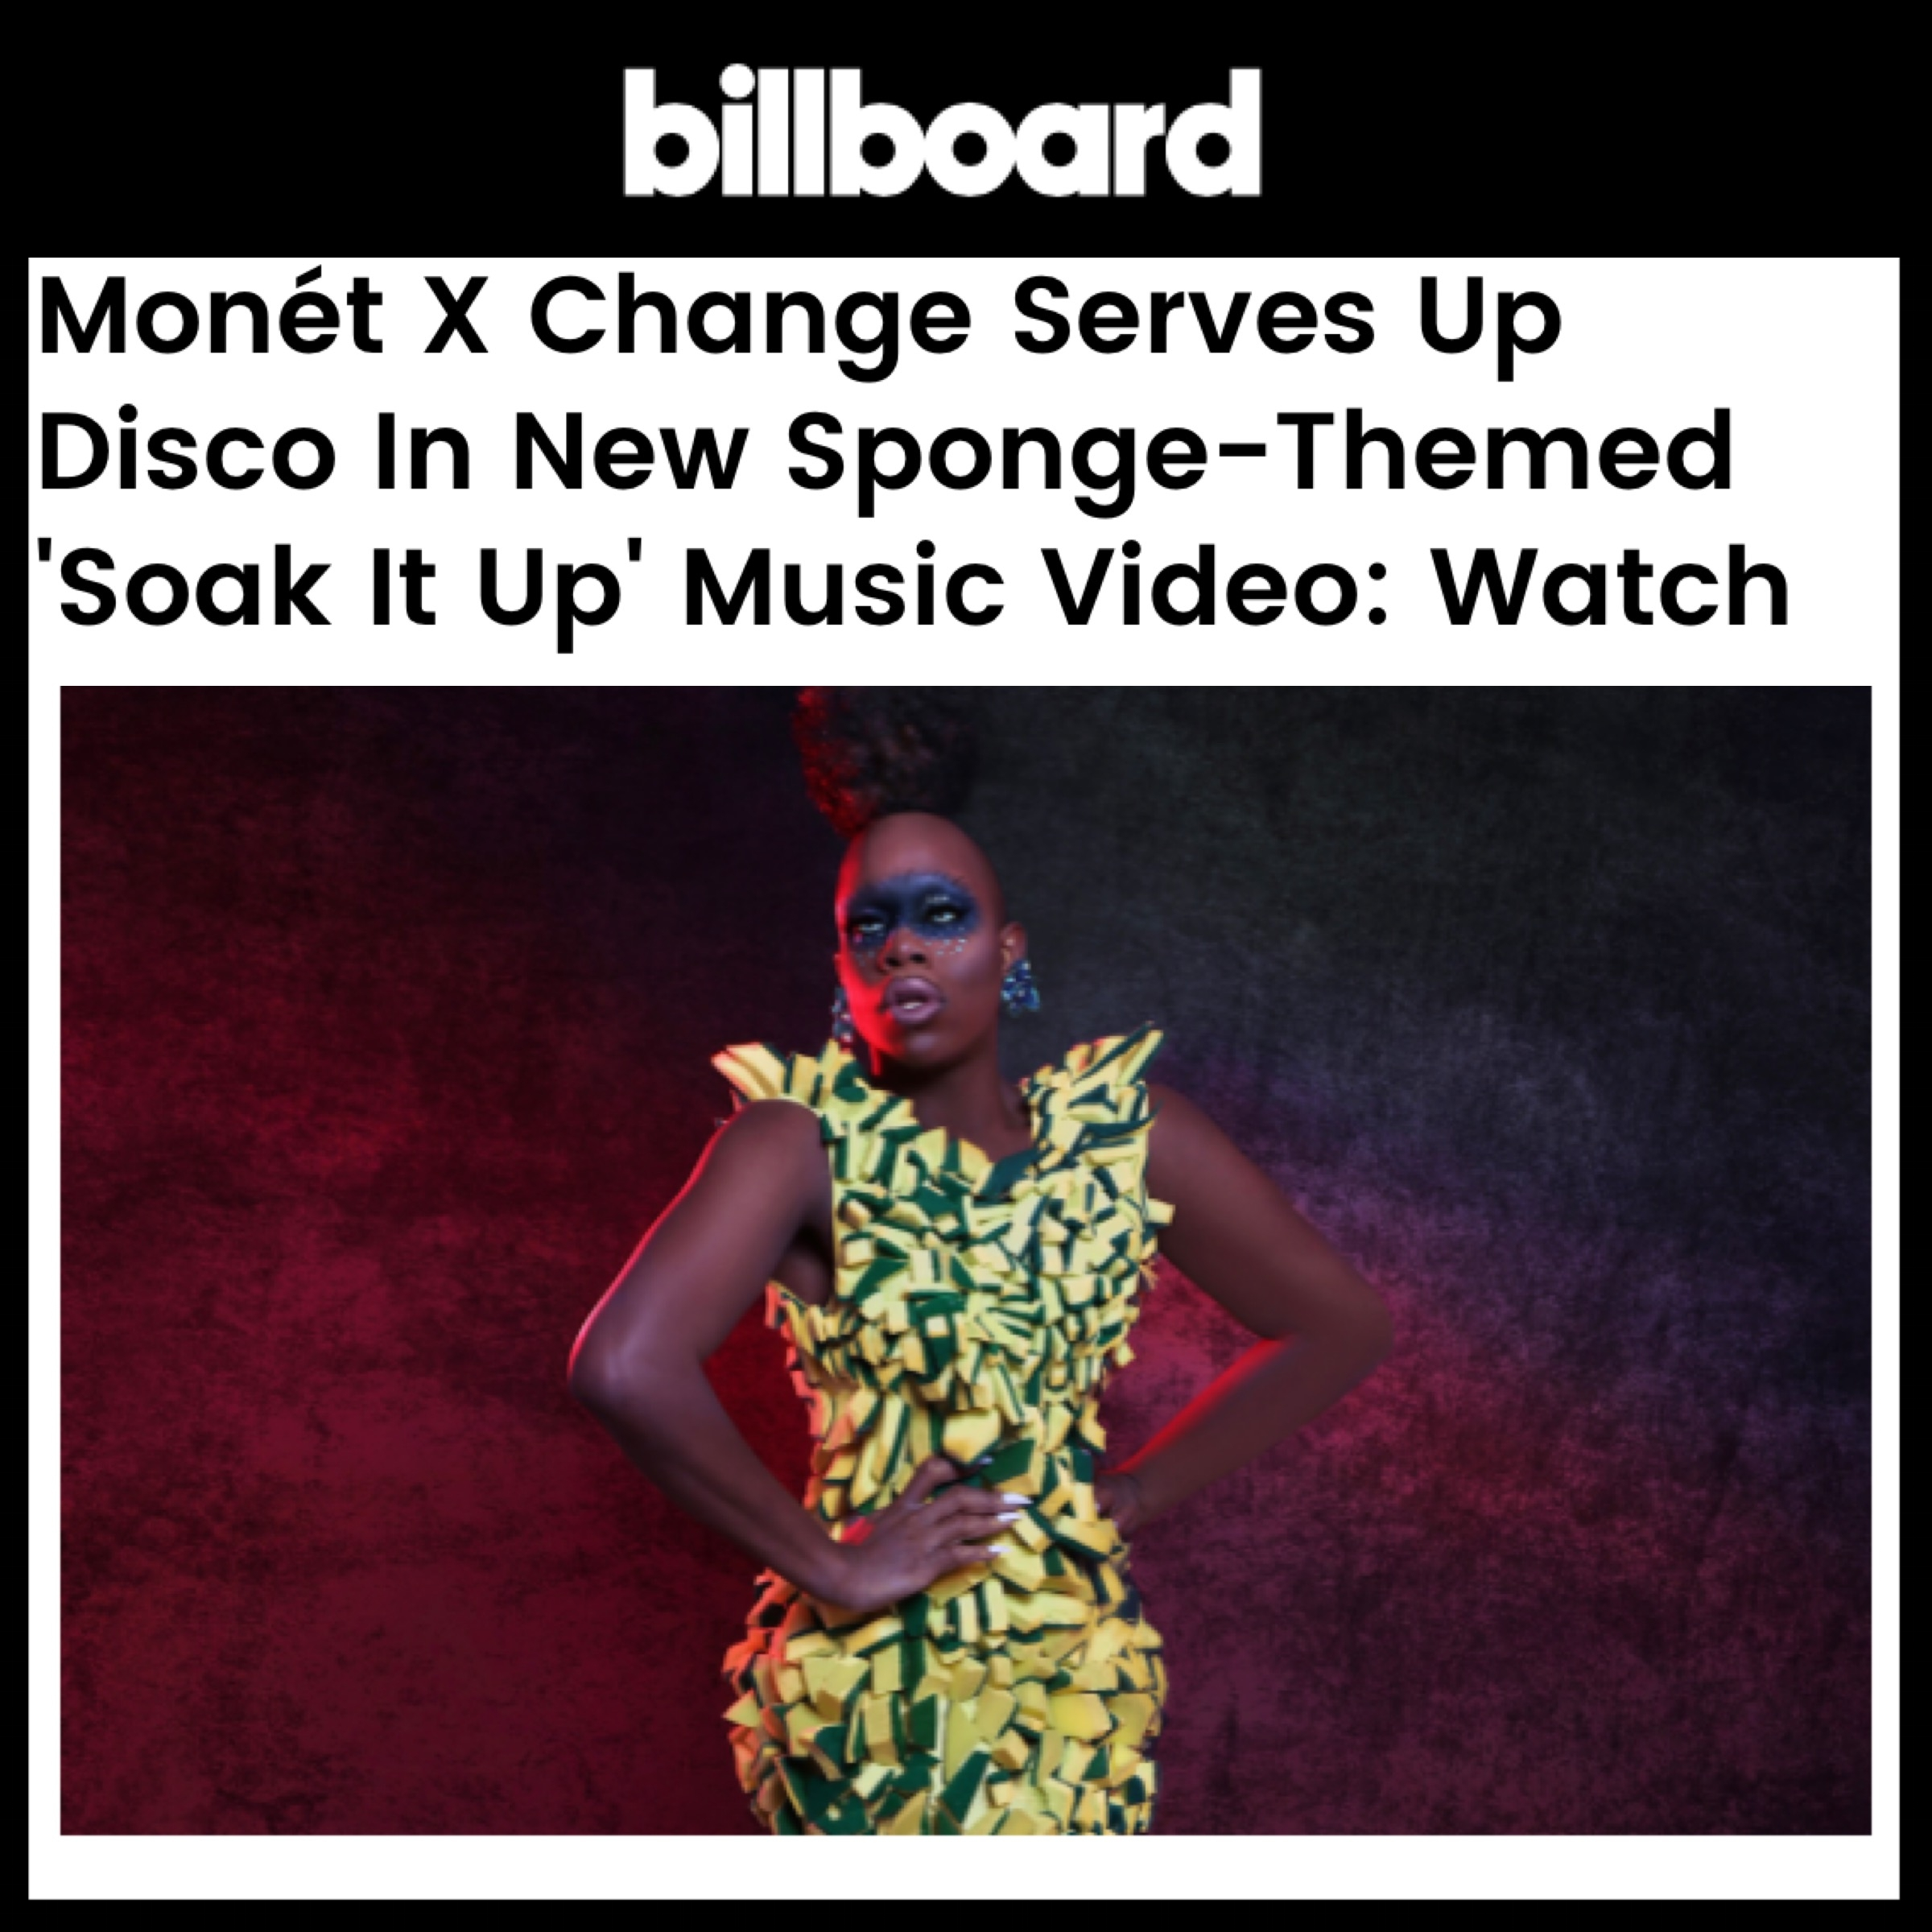 BILLBOARD - MONET X CHANGE (SOAK IT UP)